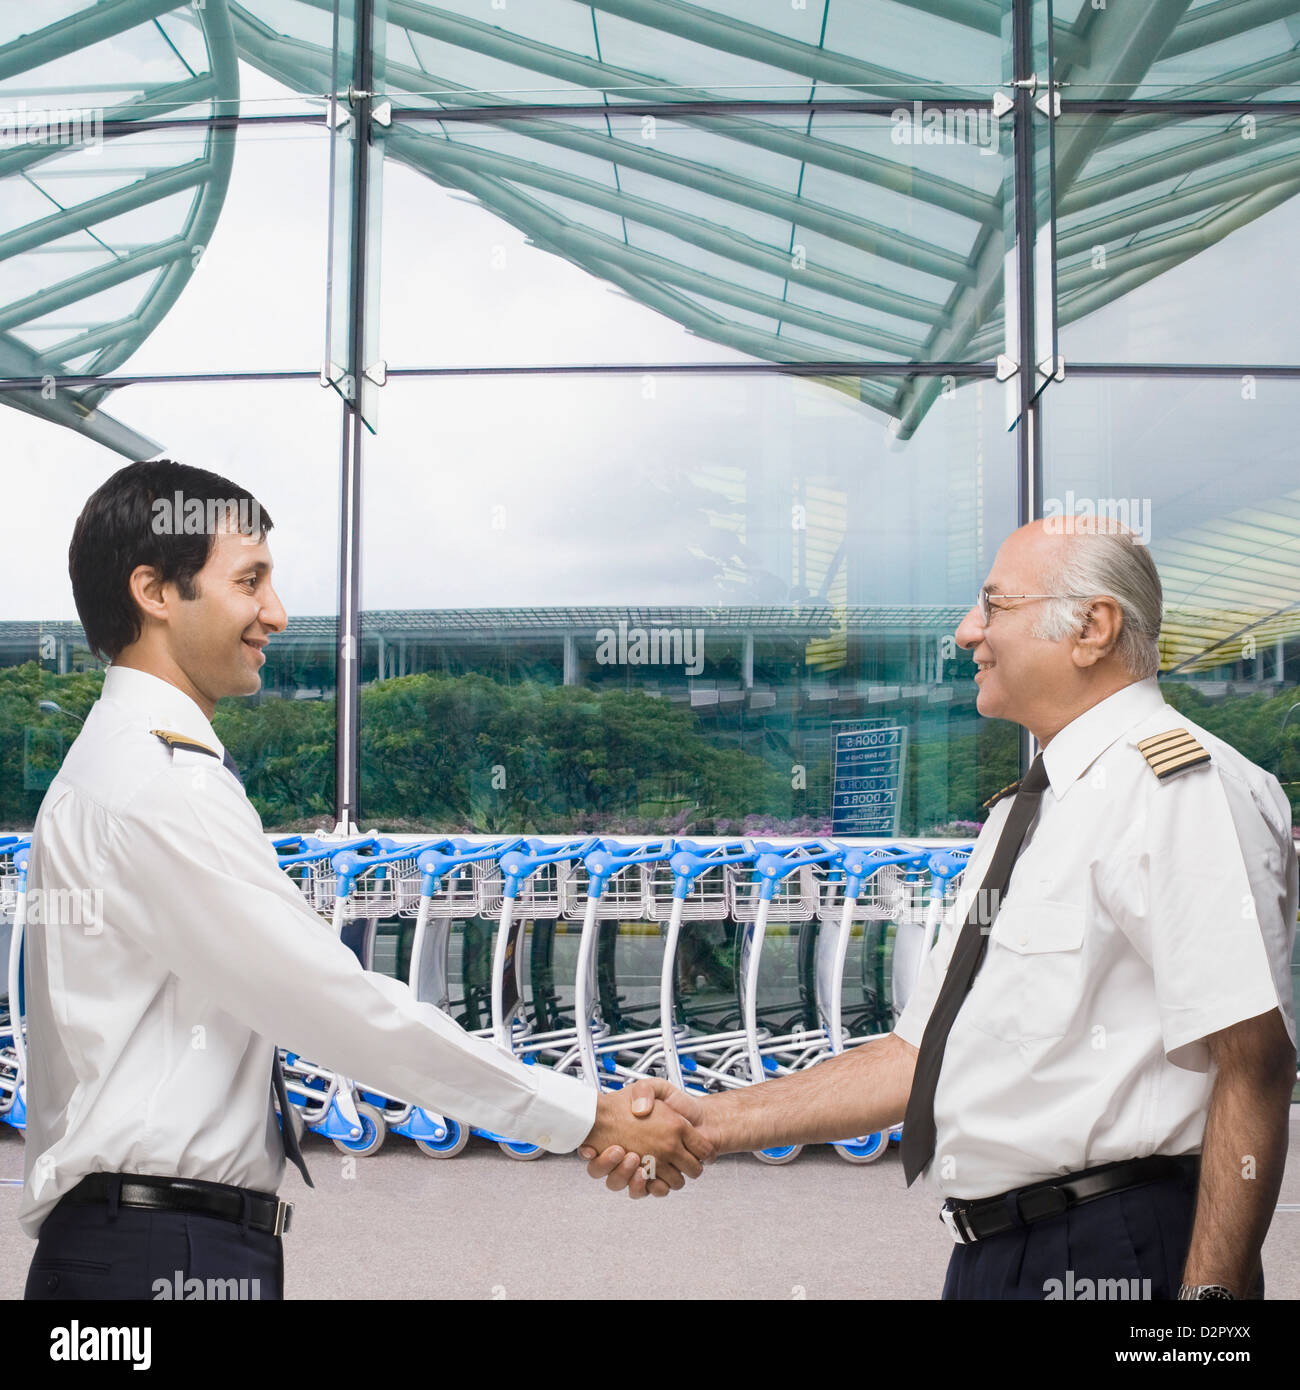 Two pilots shaking hands and smiling - Stock Image